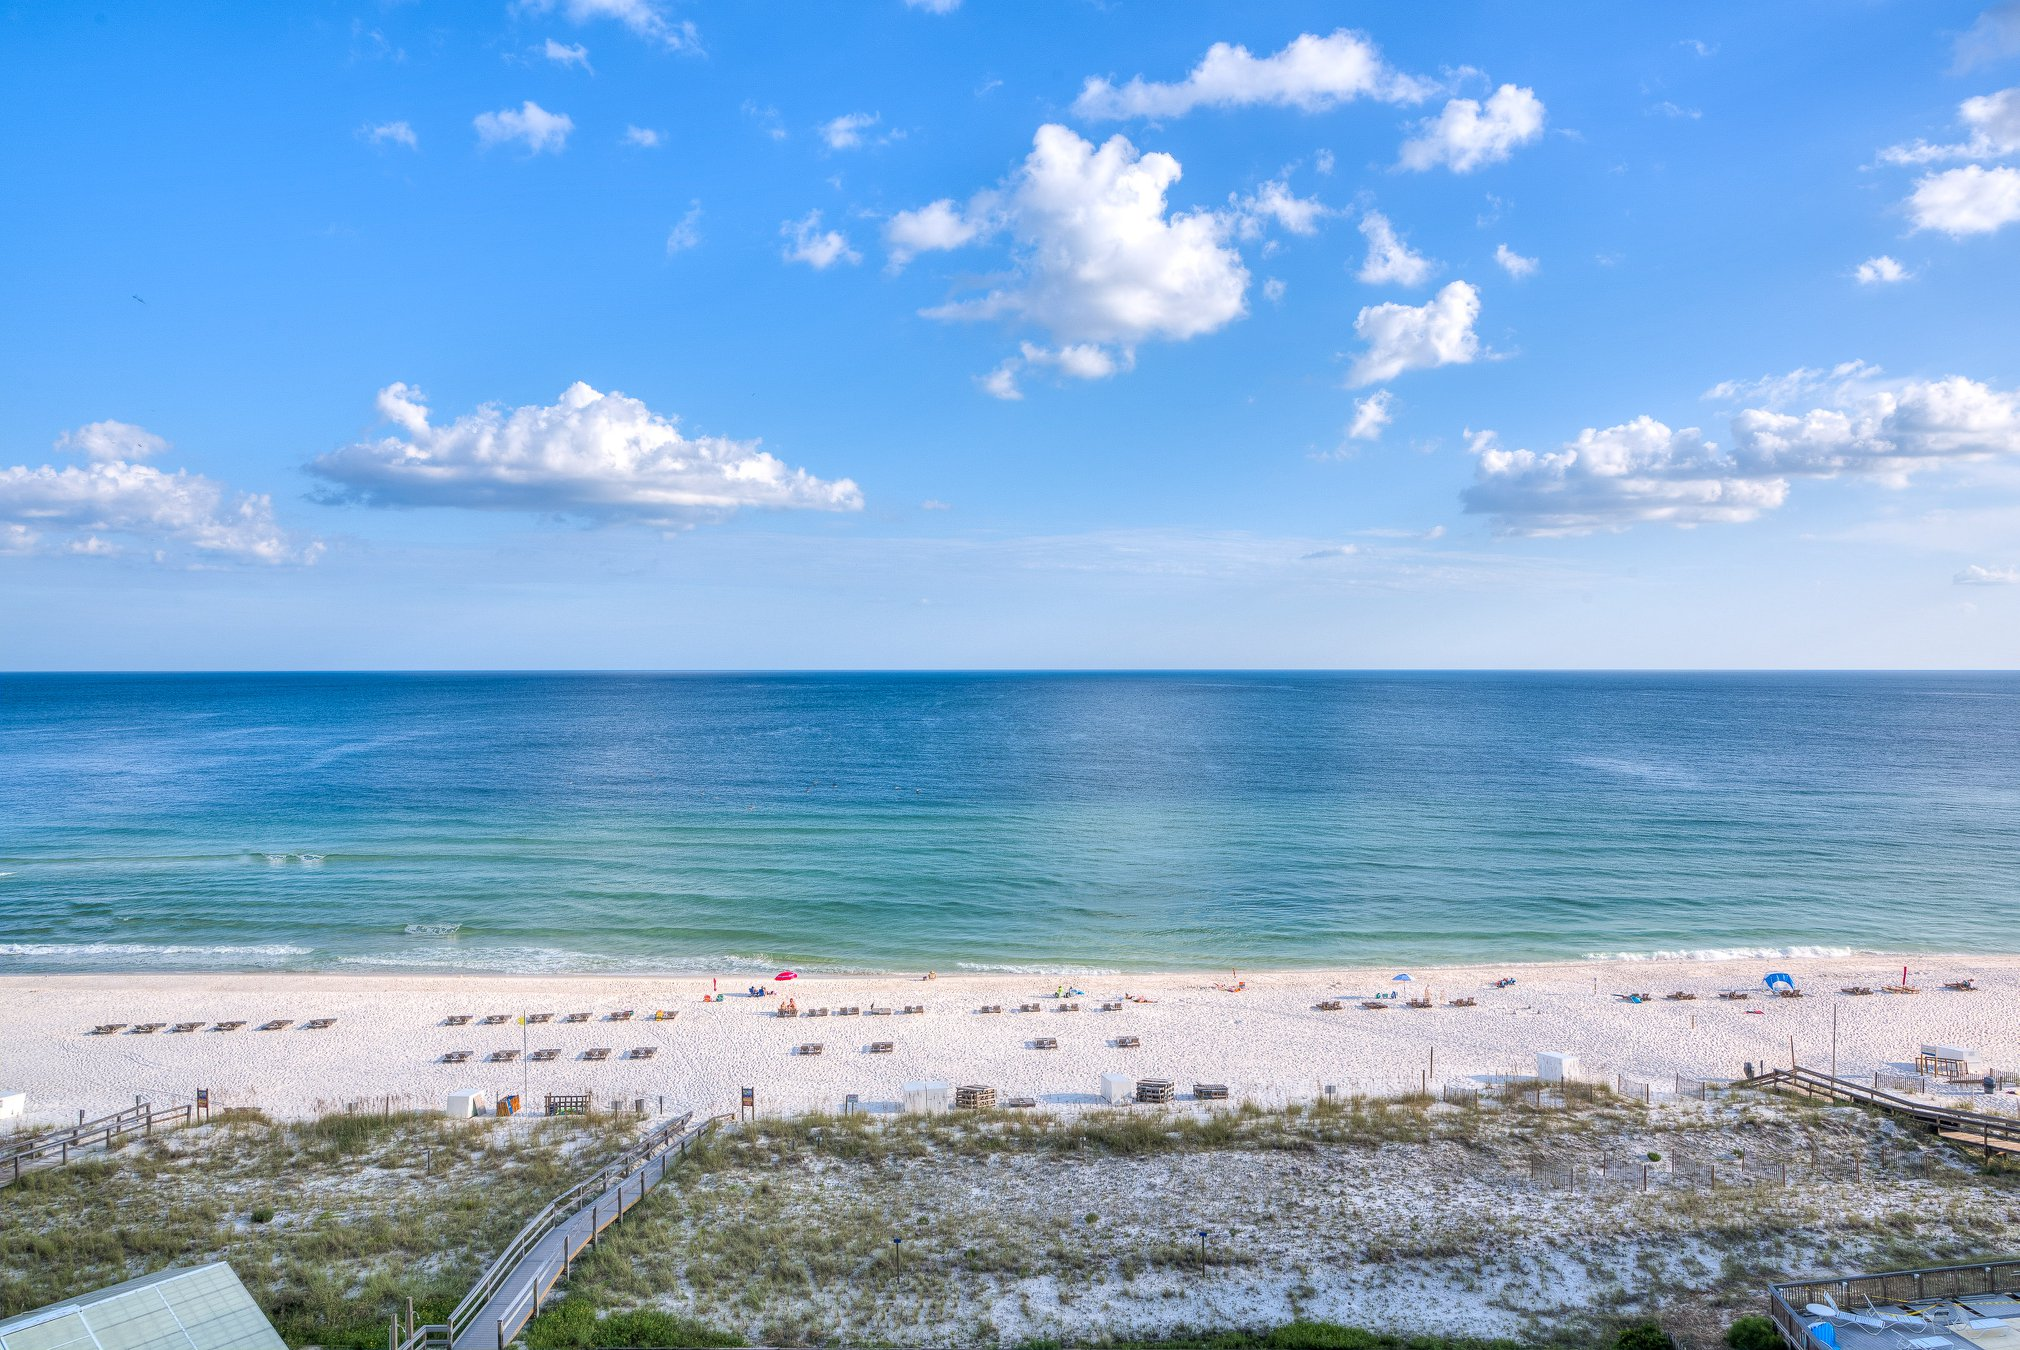 Luxury Coastal Vacations Perdido Key Gulf Coast of Florida